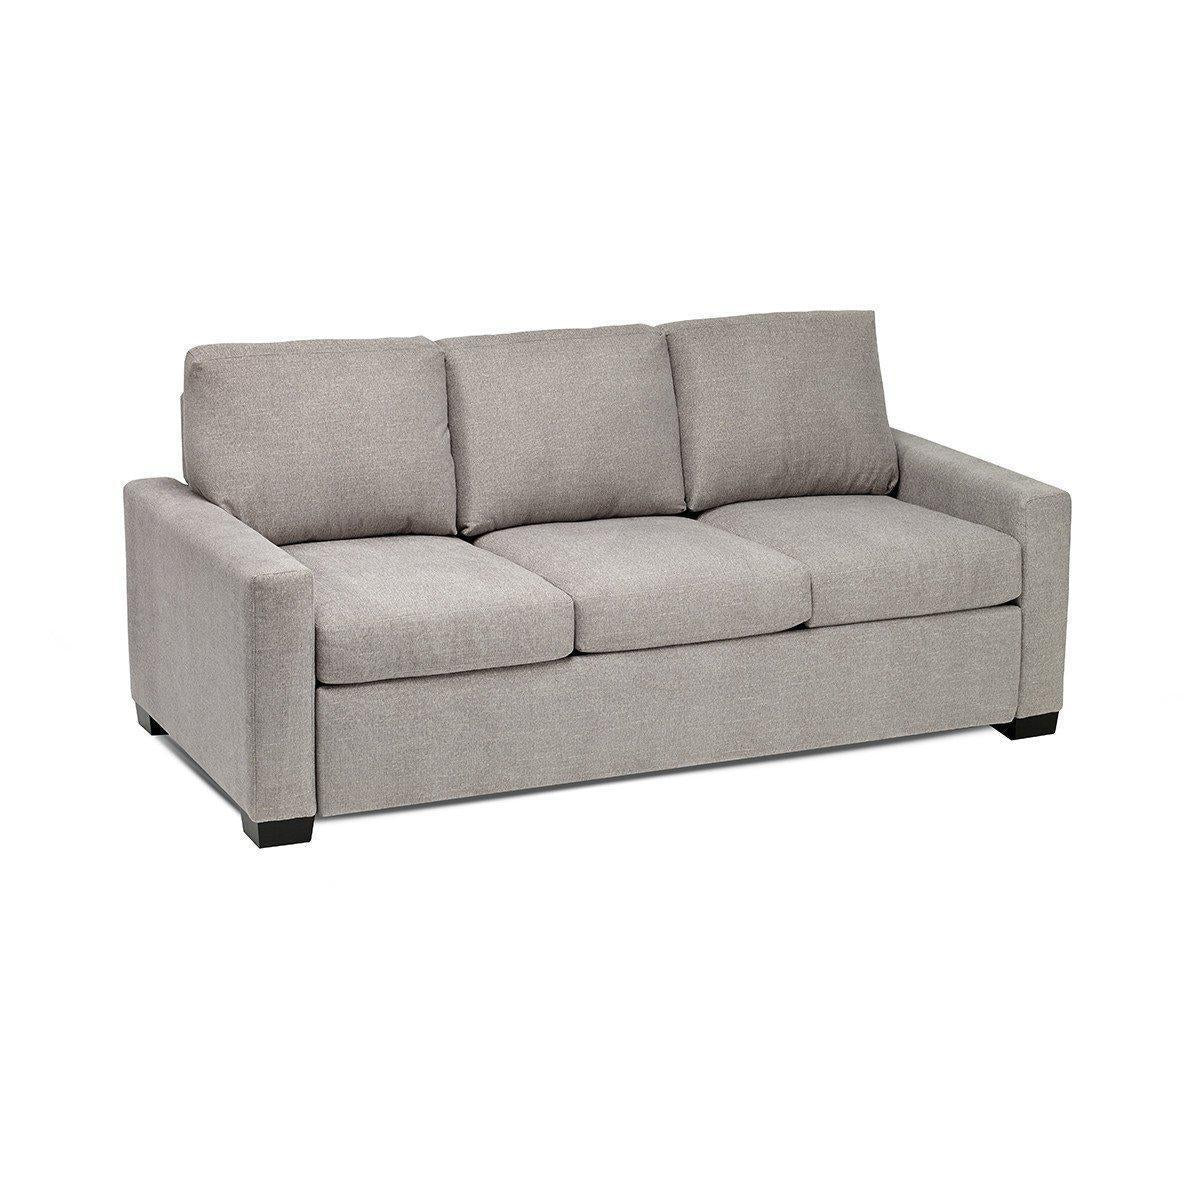 Lavanas Everyday Sleeper Sofa - American Made